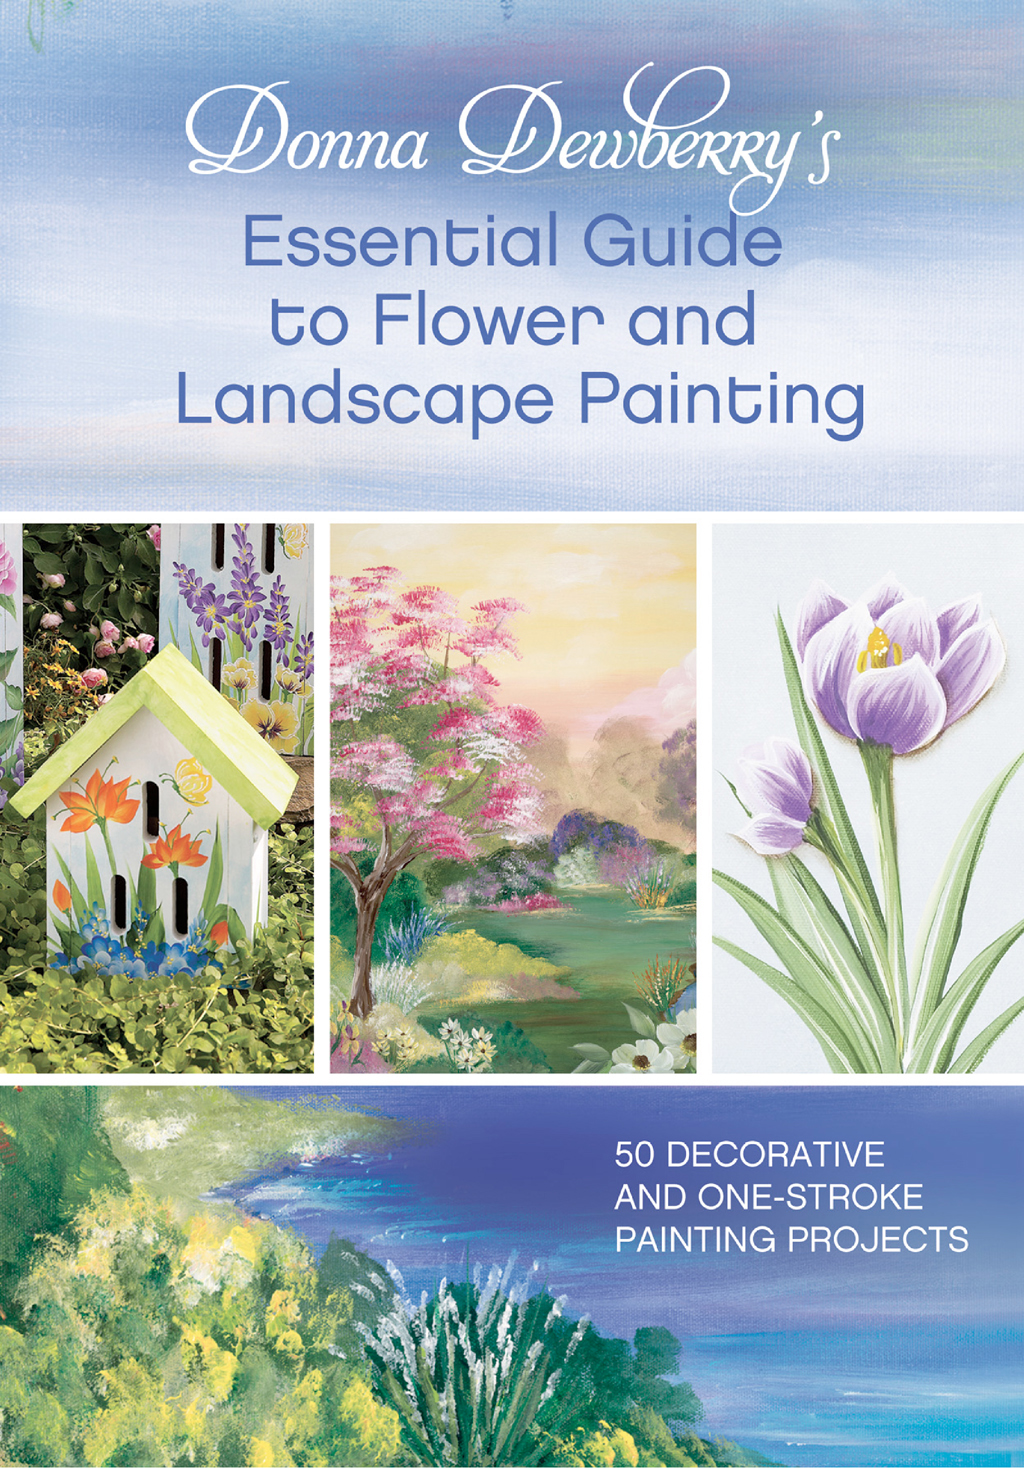 Donna Dewberry's Essential Guide to Flower and Landscape Painting 50 Decorative and One-Stroke Painting Projects